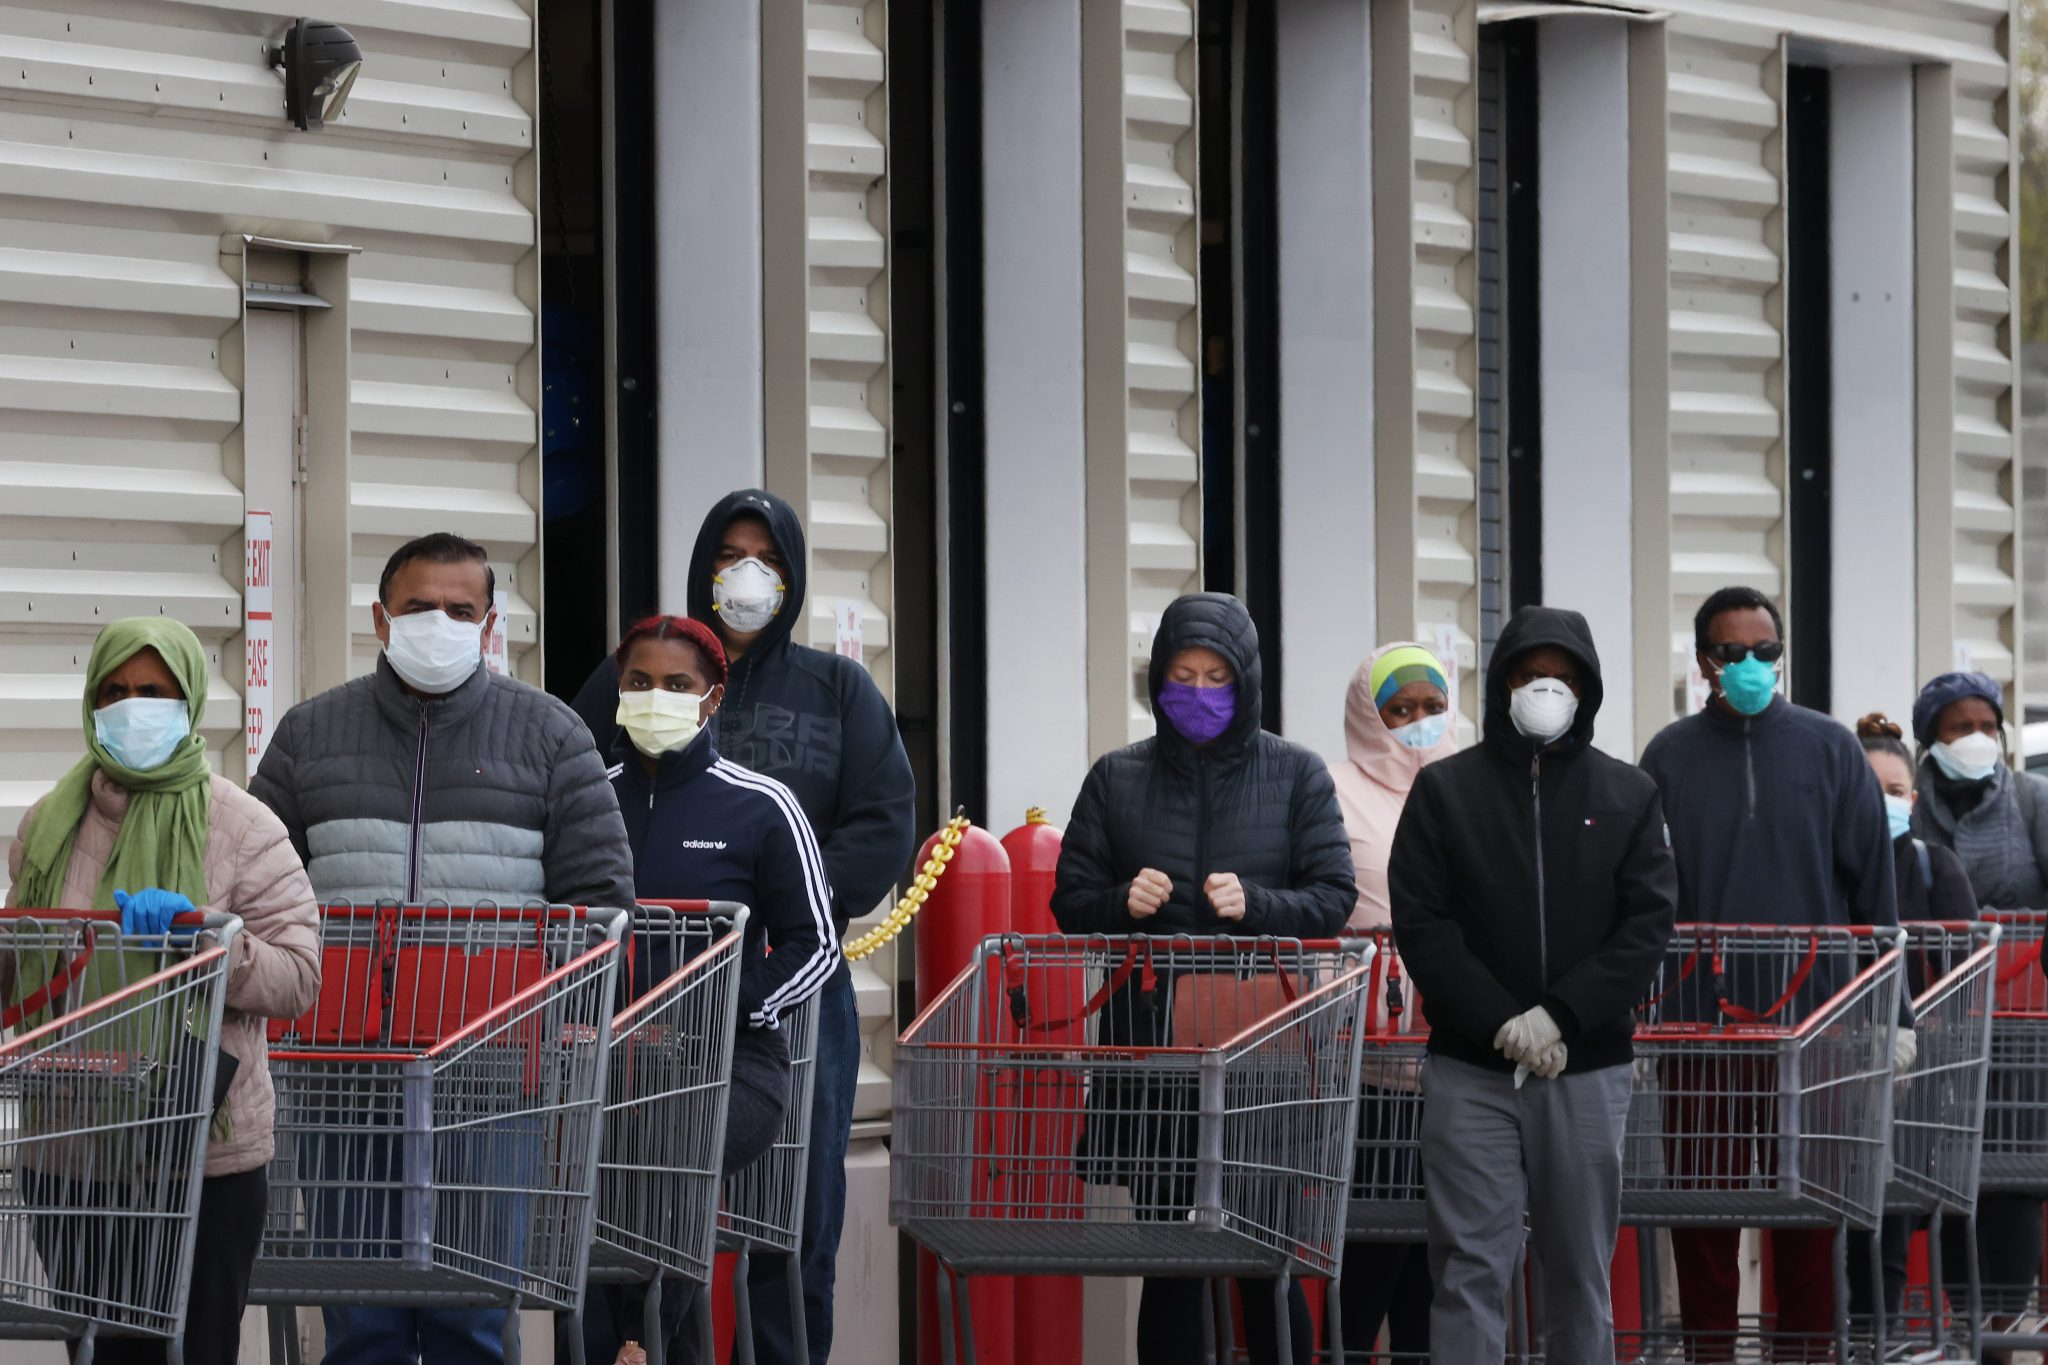 Medical leaders says face masks should be worn at every opportunity to limit the spread of coronavirus indoors and outdoors